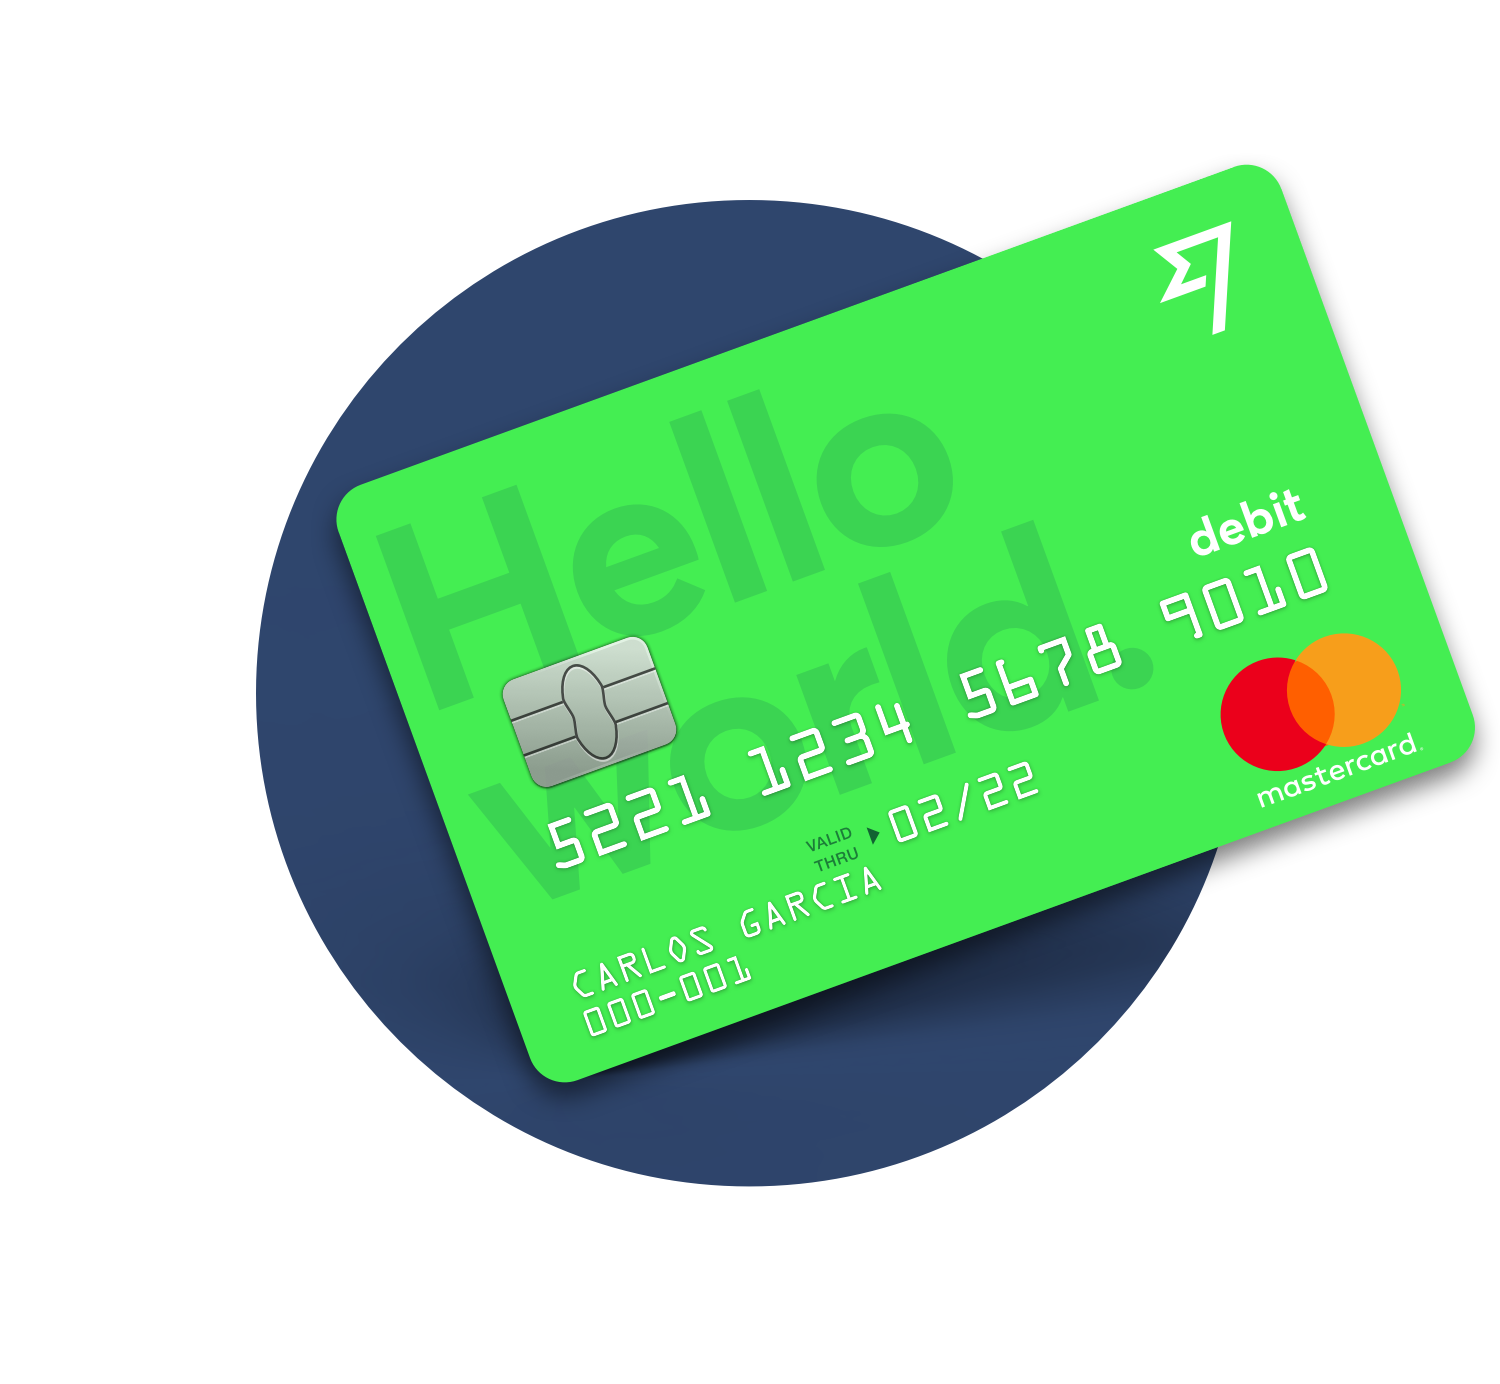 Coming soon! The TransferWise debit Mastercard.